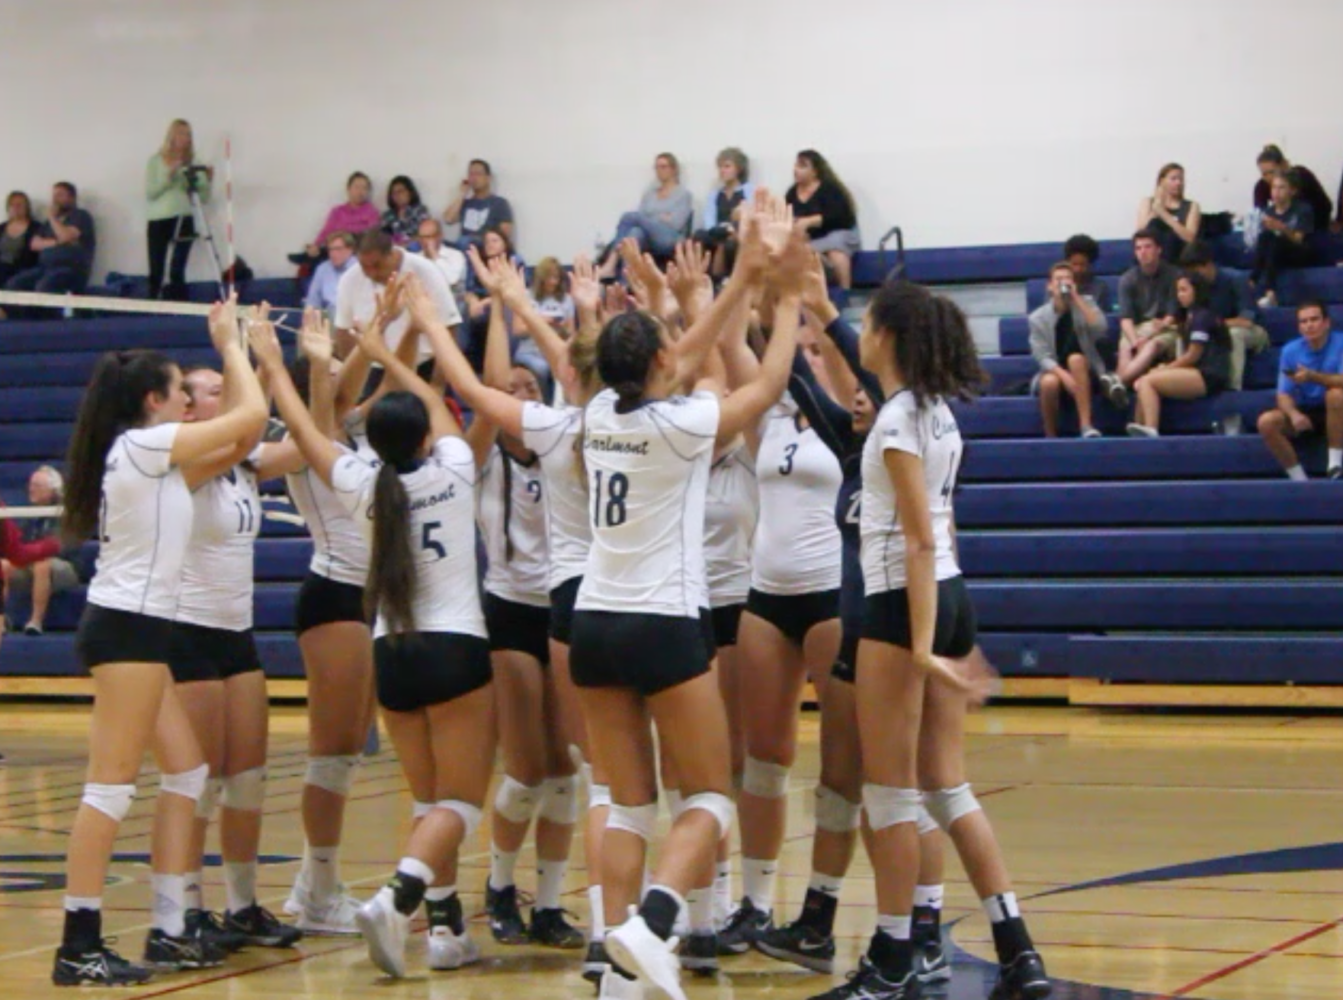 Scots+cheer+after+winning+the+point+in+a+long+rally+against+the+San+Mateo+Bearcats.